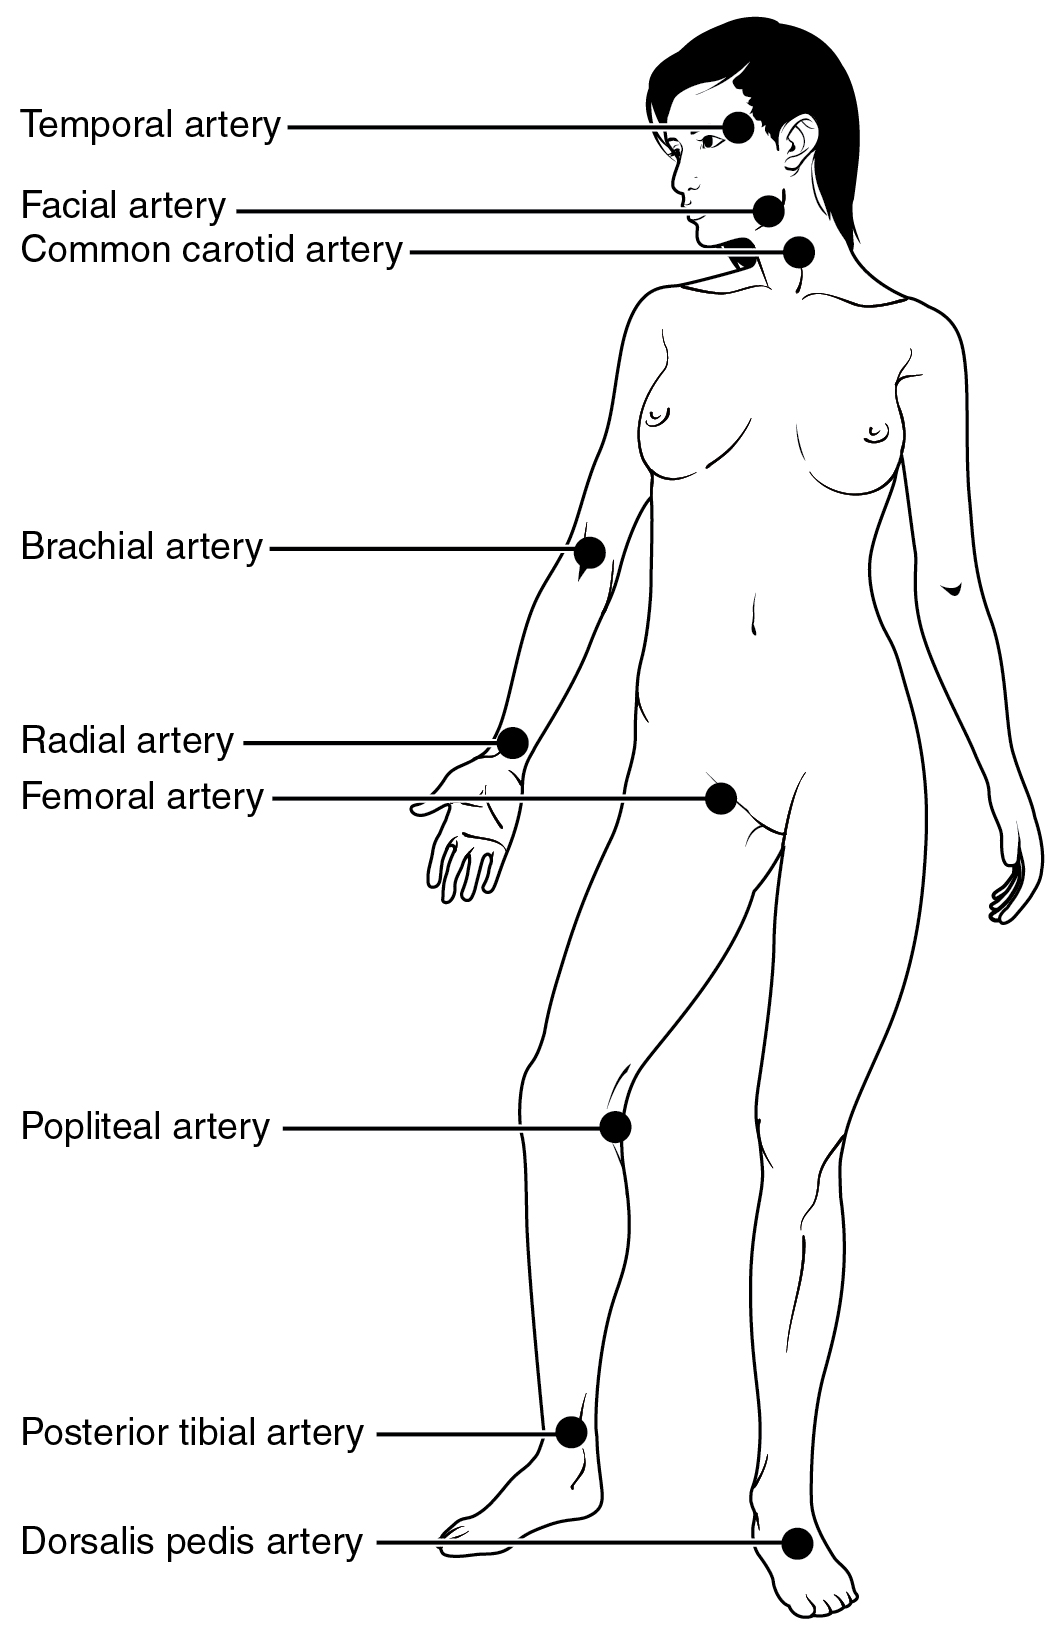 This image shows the pulse points in a woman's body.